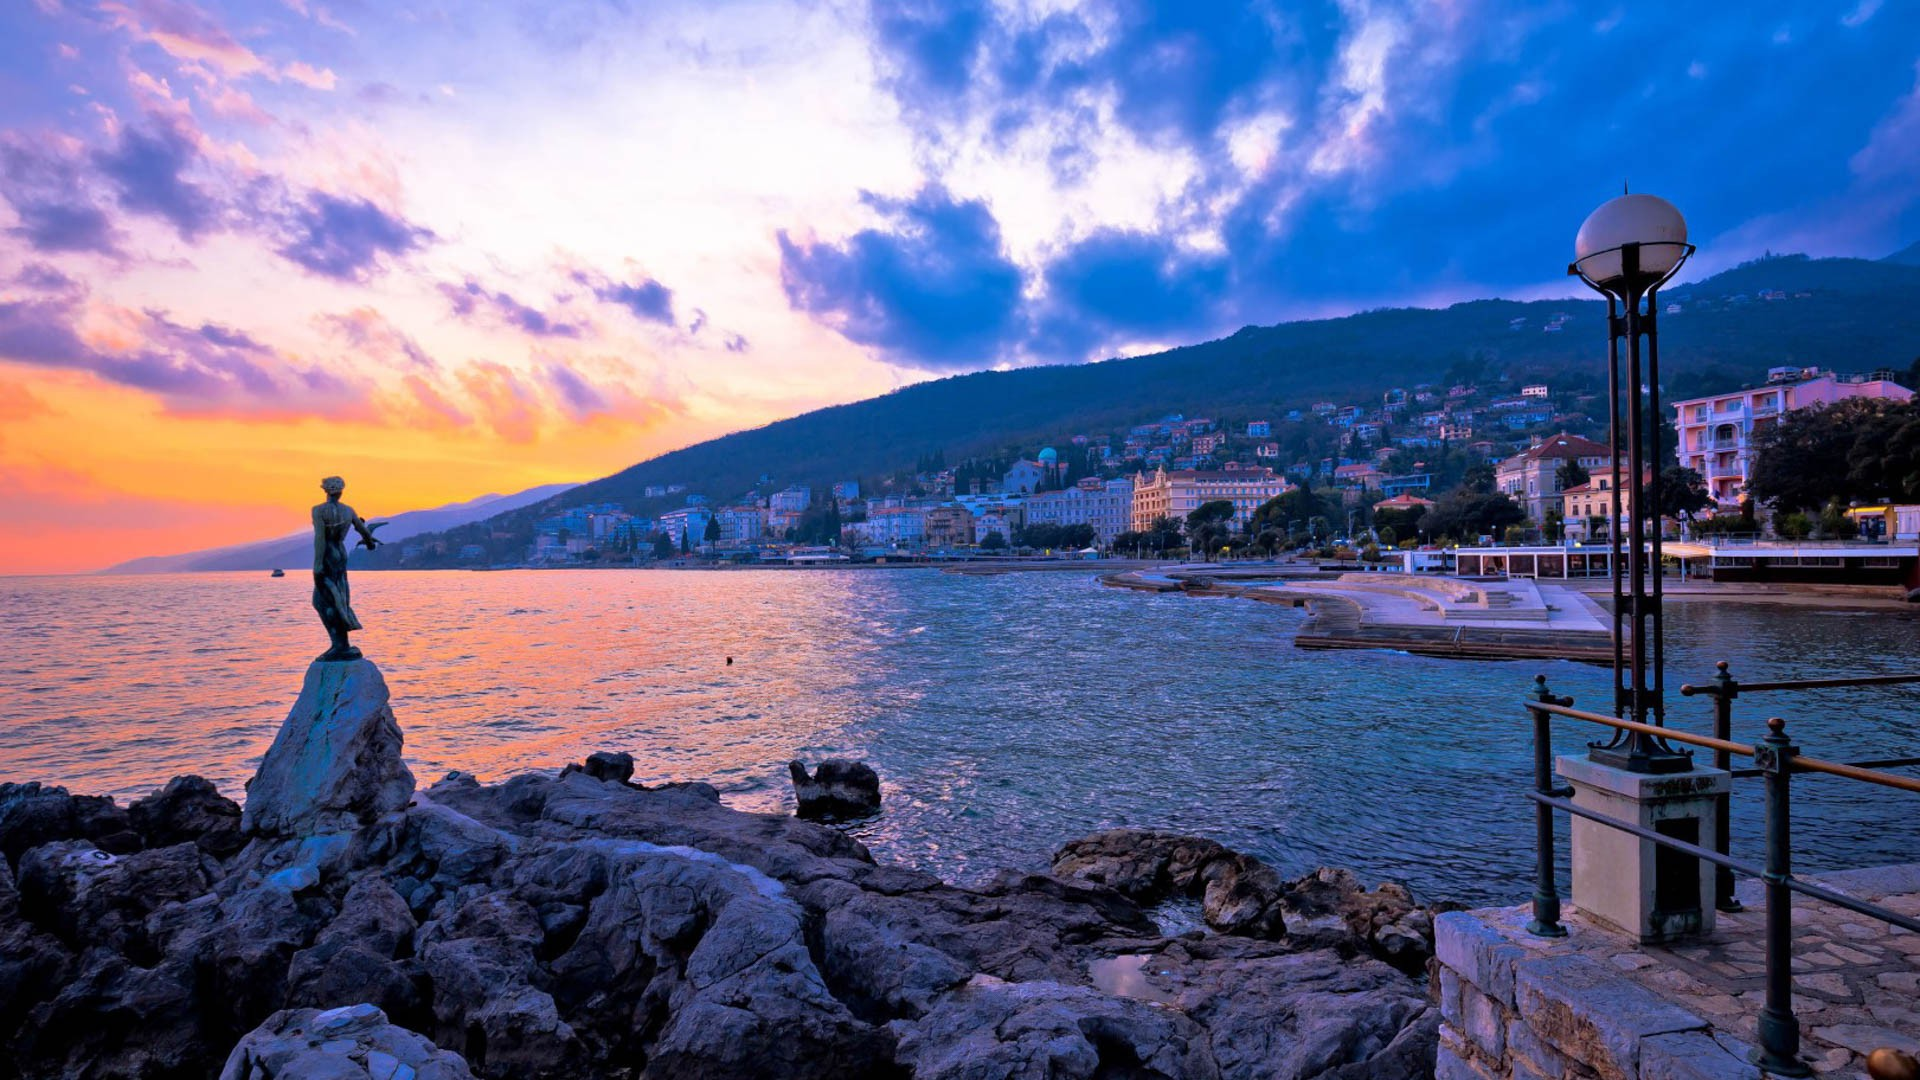 Opatija - Adriatic Sea | Croatia Cruise Croatia Cruise